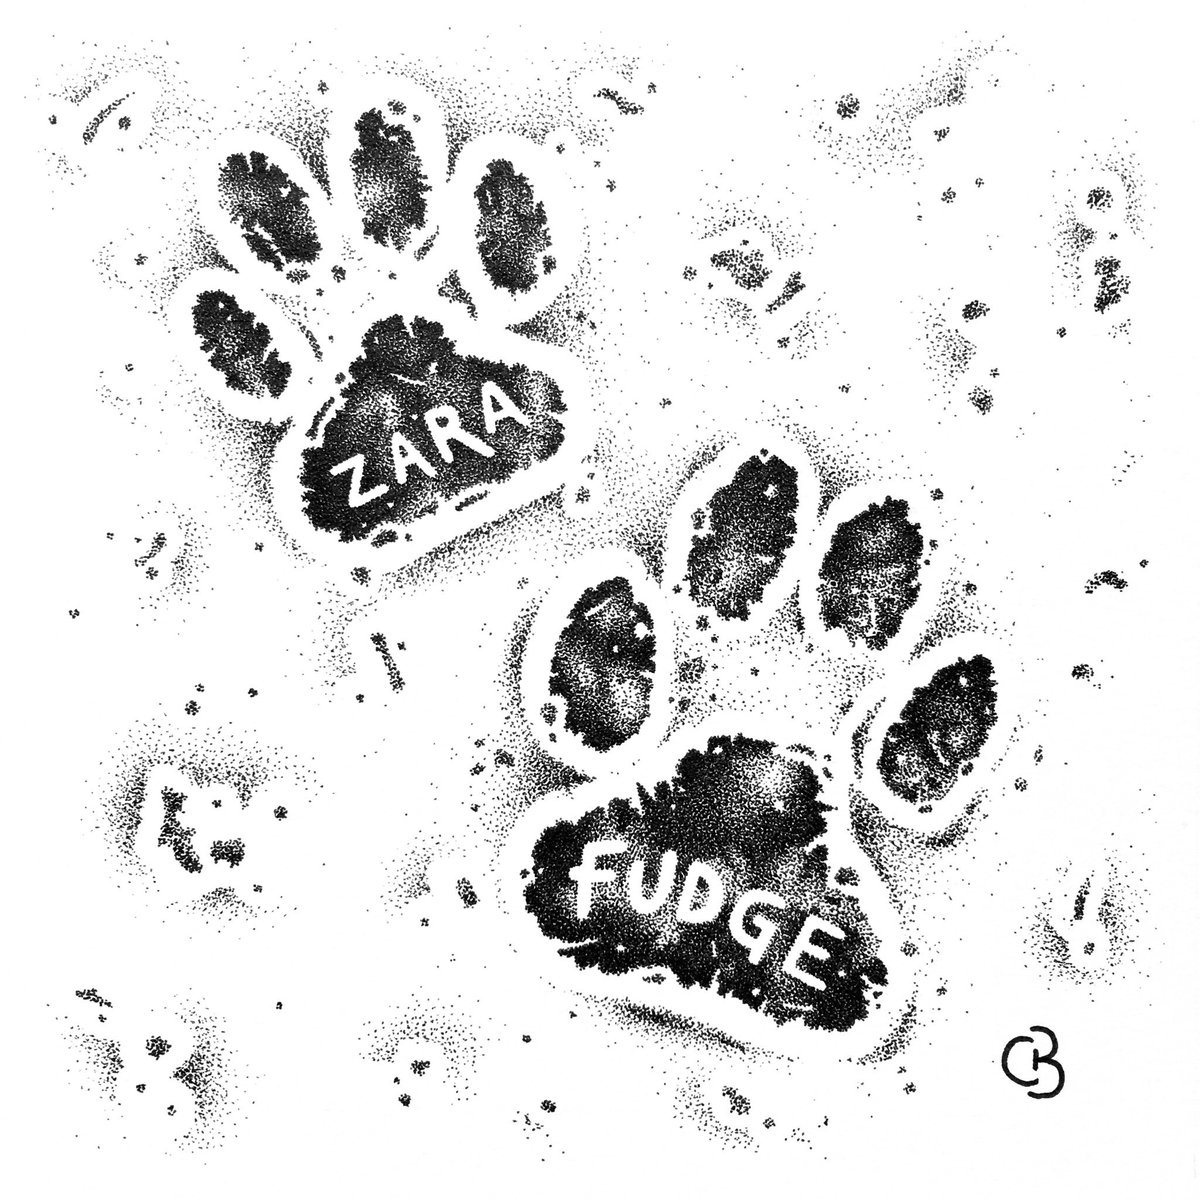 Another #personalised product with these #handdrawn #pawprints 🐾 a whole lot of dots in this one...!   #dog #labrador #giftideas #creativegifts #personal #penandink #blackandwhite #madetoorder #oneofakind #art #design #fineart #unique  #highstridesoc #localartist #birmingham